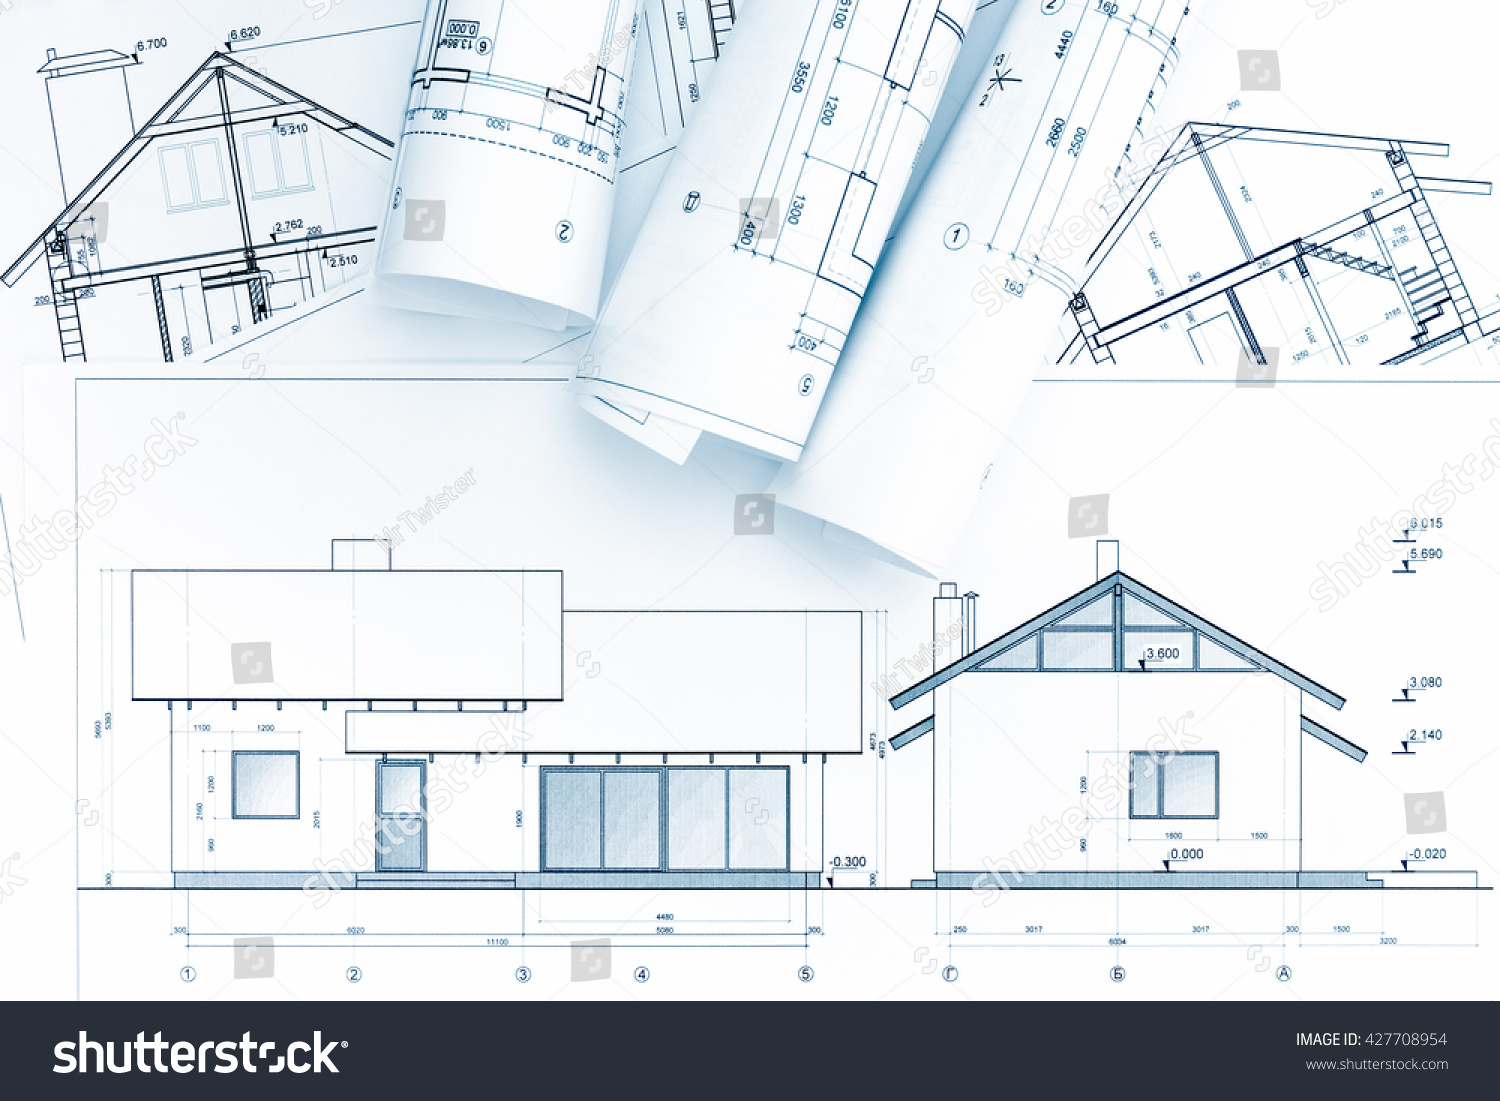 Home Construction Plans Architectural Blueprint Rolls Stock Photo ...